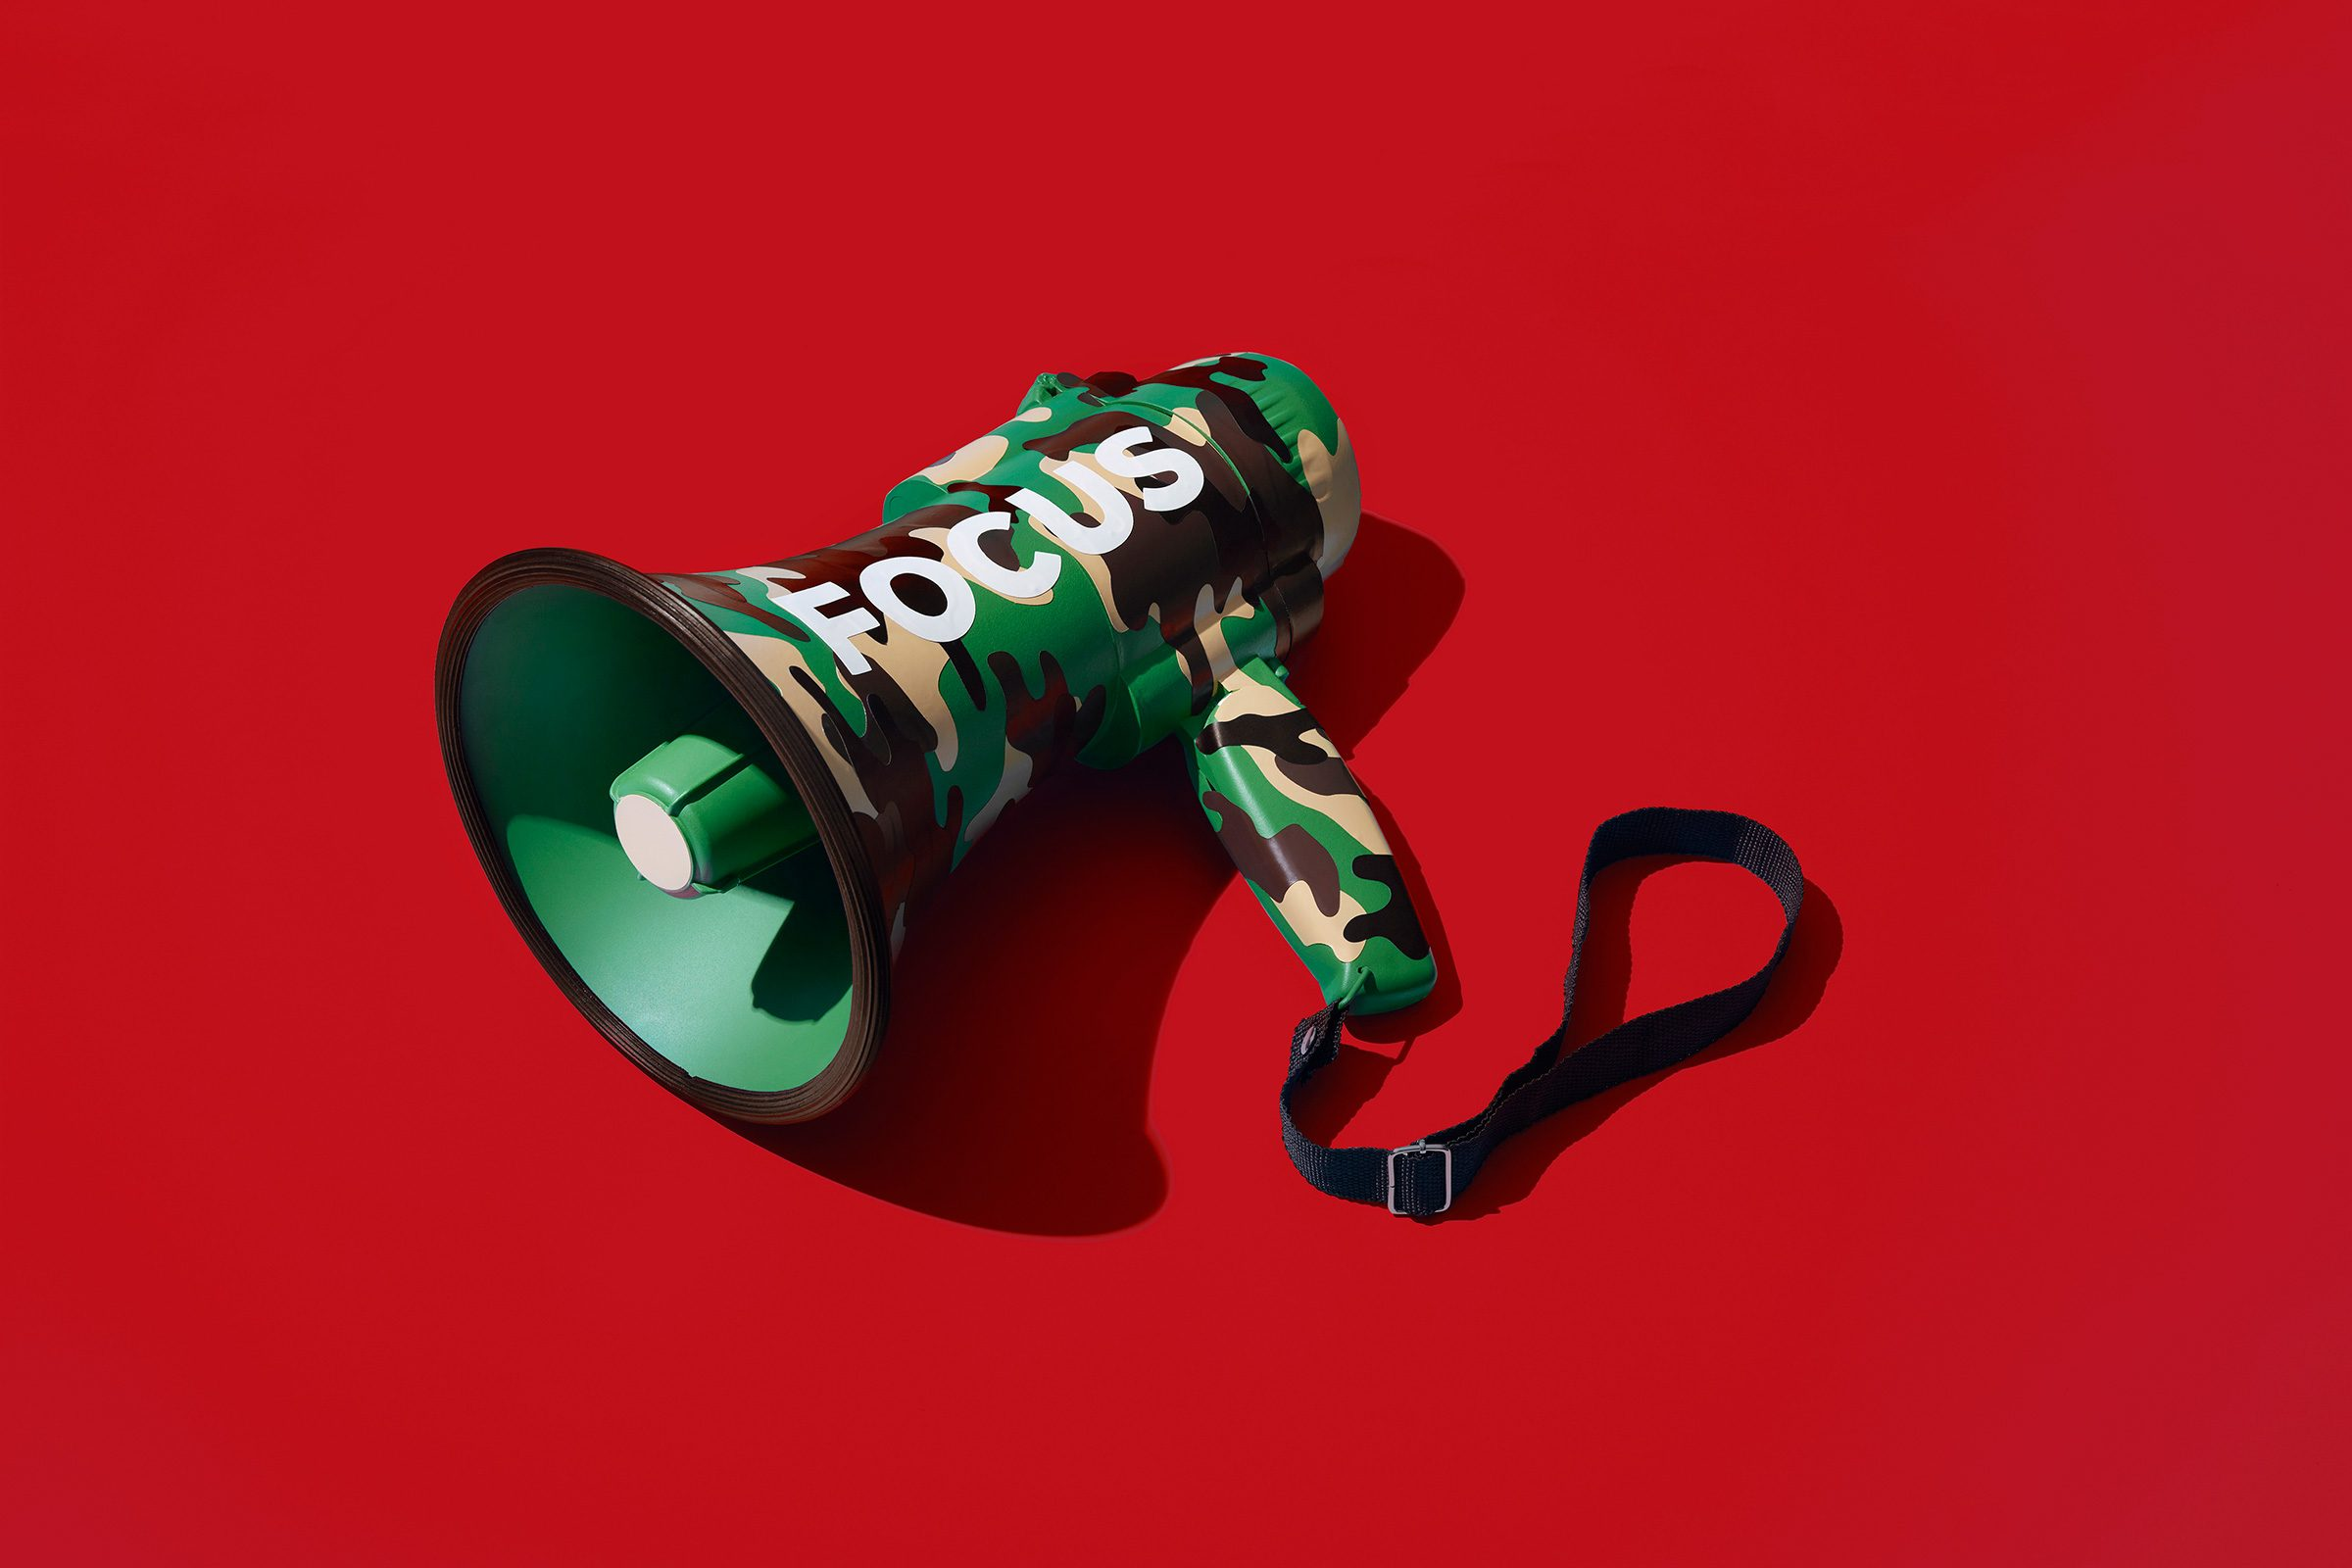 Megaphone on red